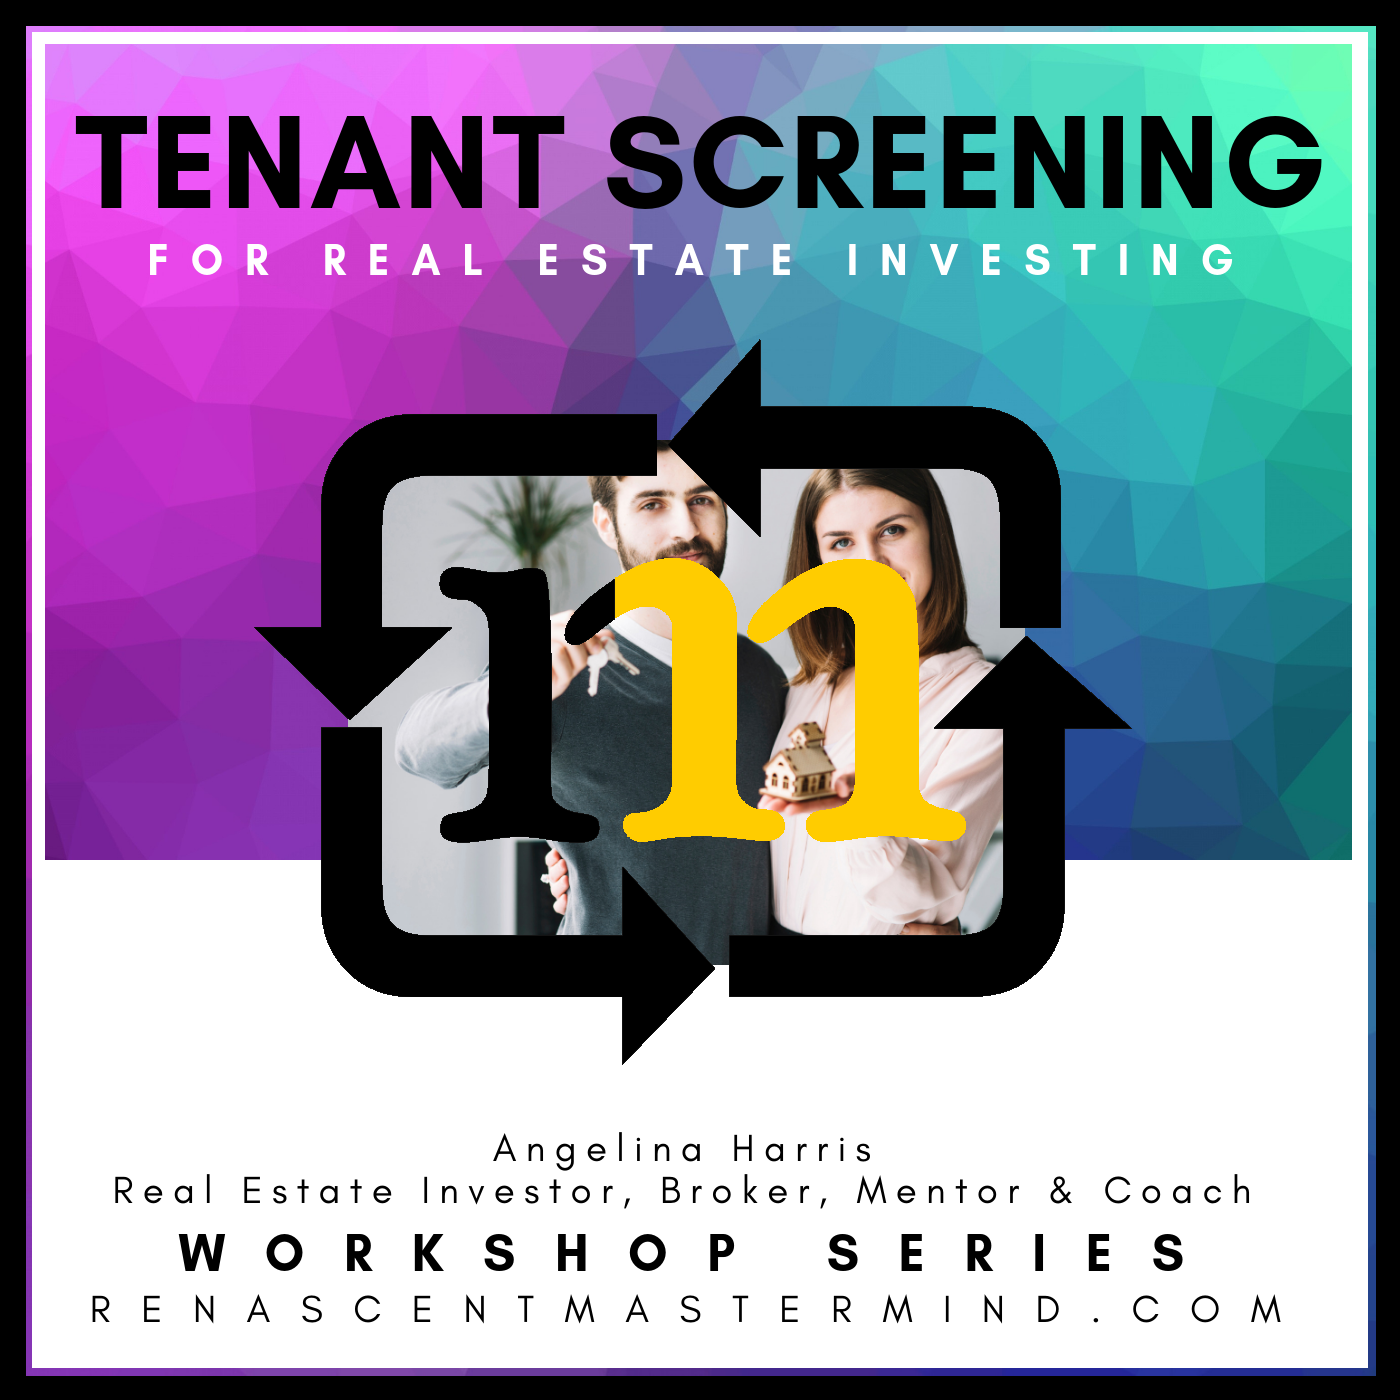 Copy of enant Screening | Workshop Series  with Angelina Harris, Real Estate Investor, Broker, Mentor & Coach